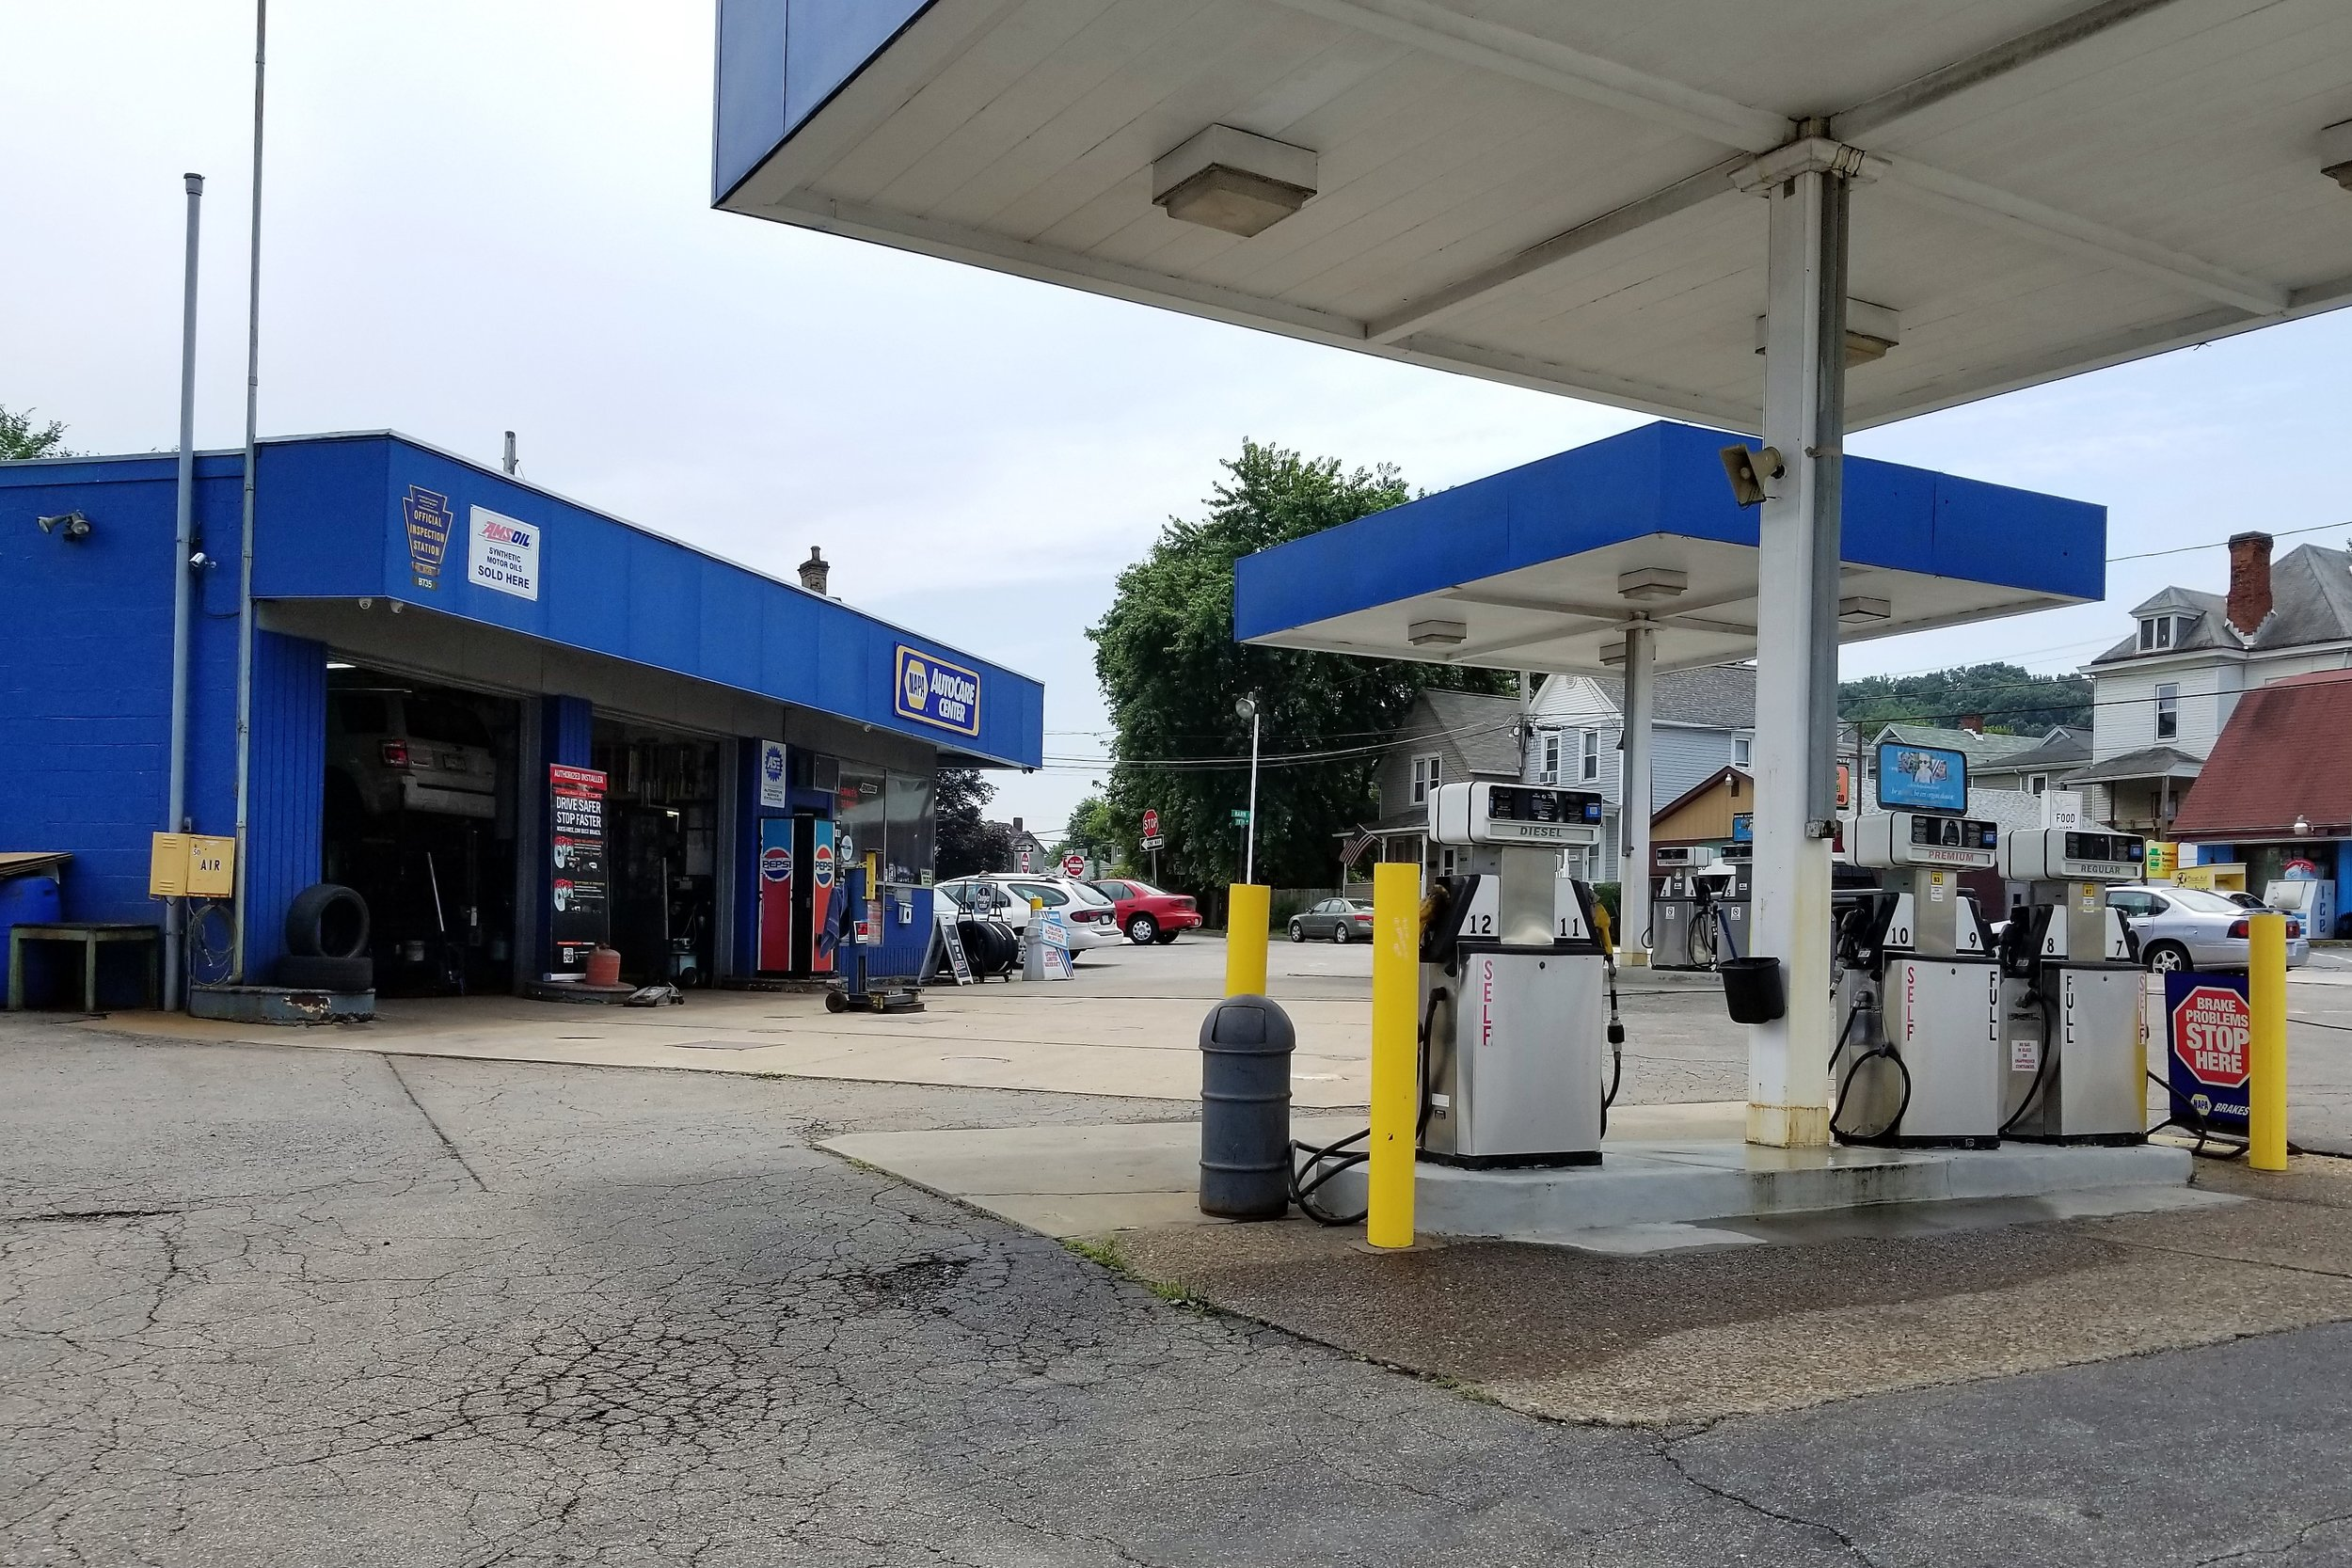 Graff's Service Station - 1601 5th Ave, (412) 264-9733